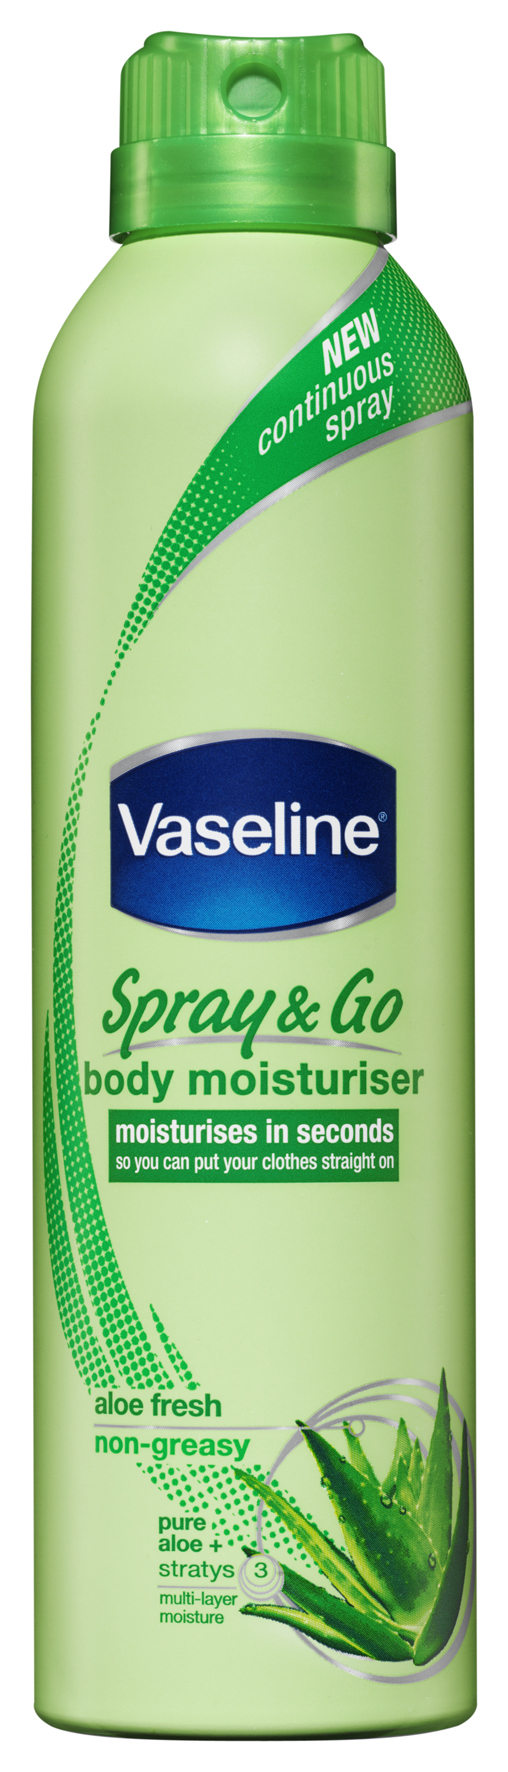 Vaseline Spray & Go - Aloë Fresh